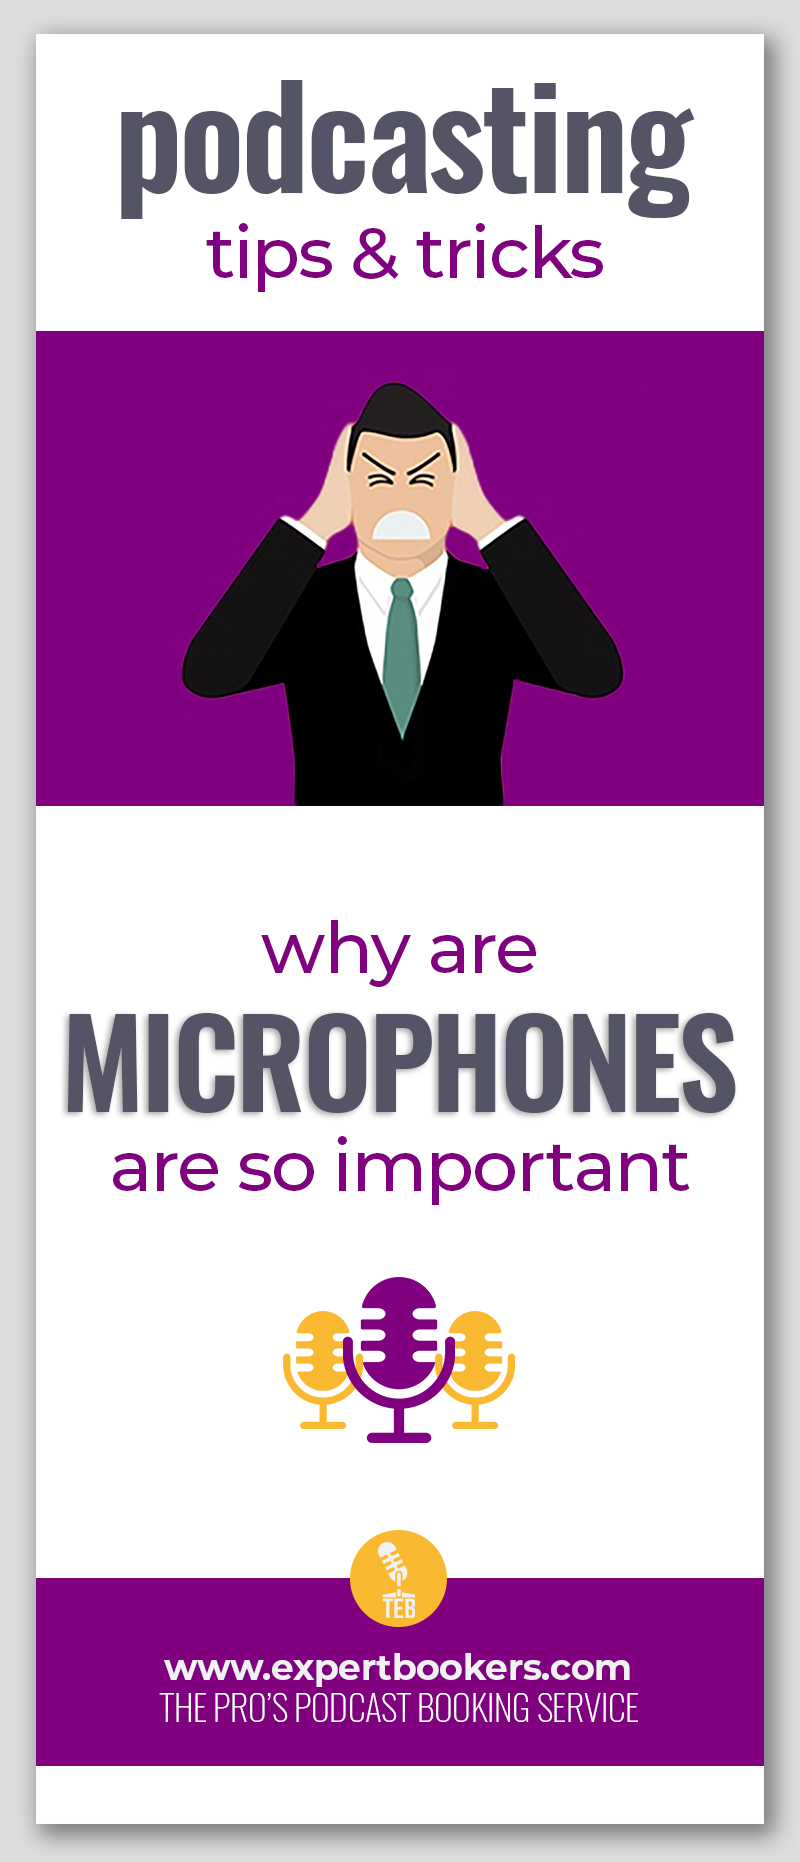 Why-Microphones-are-so-important-podcasting-expertbookers.jpg